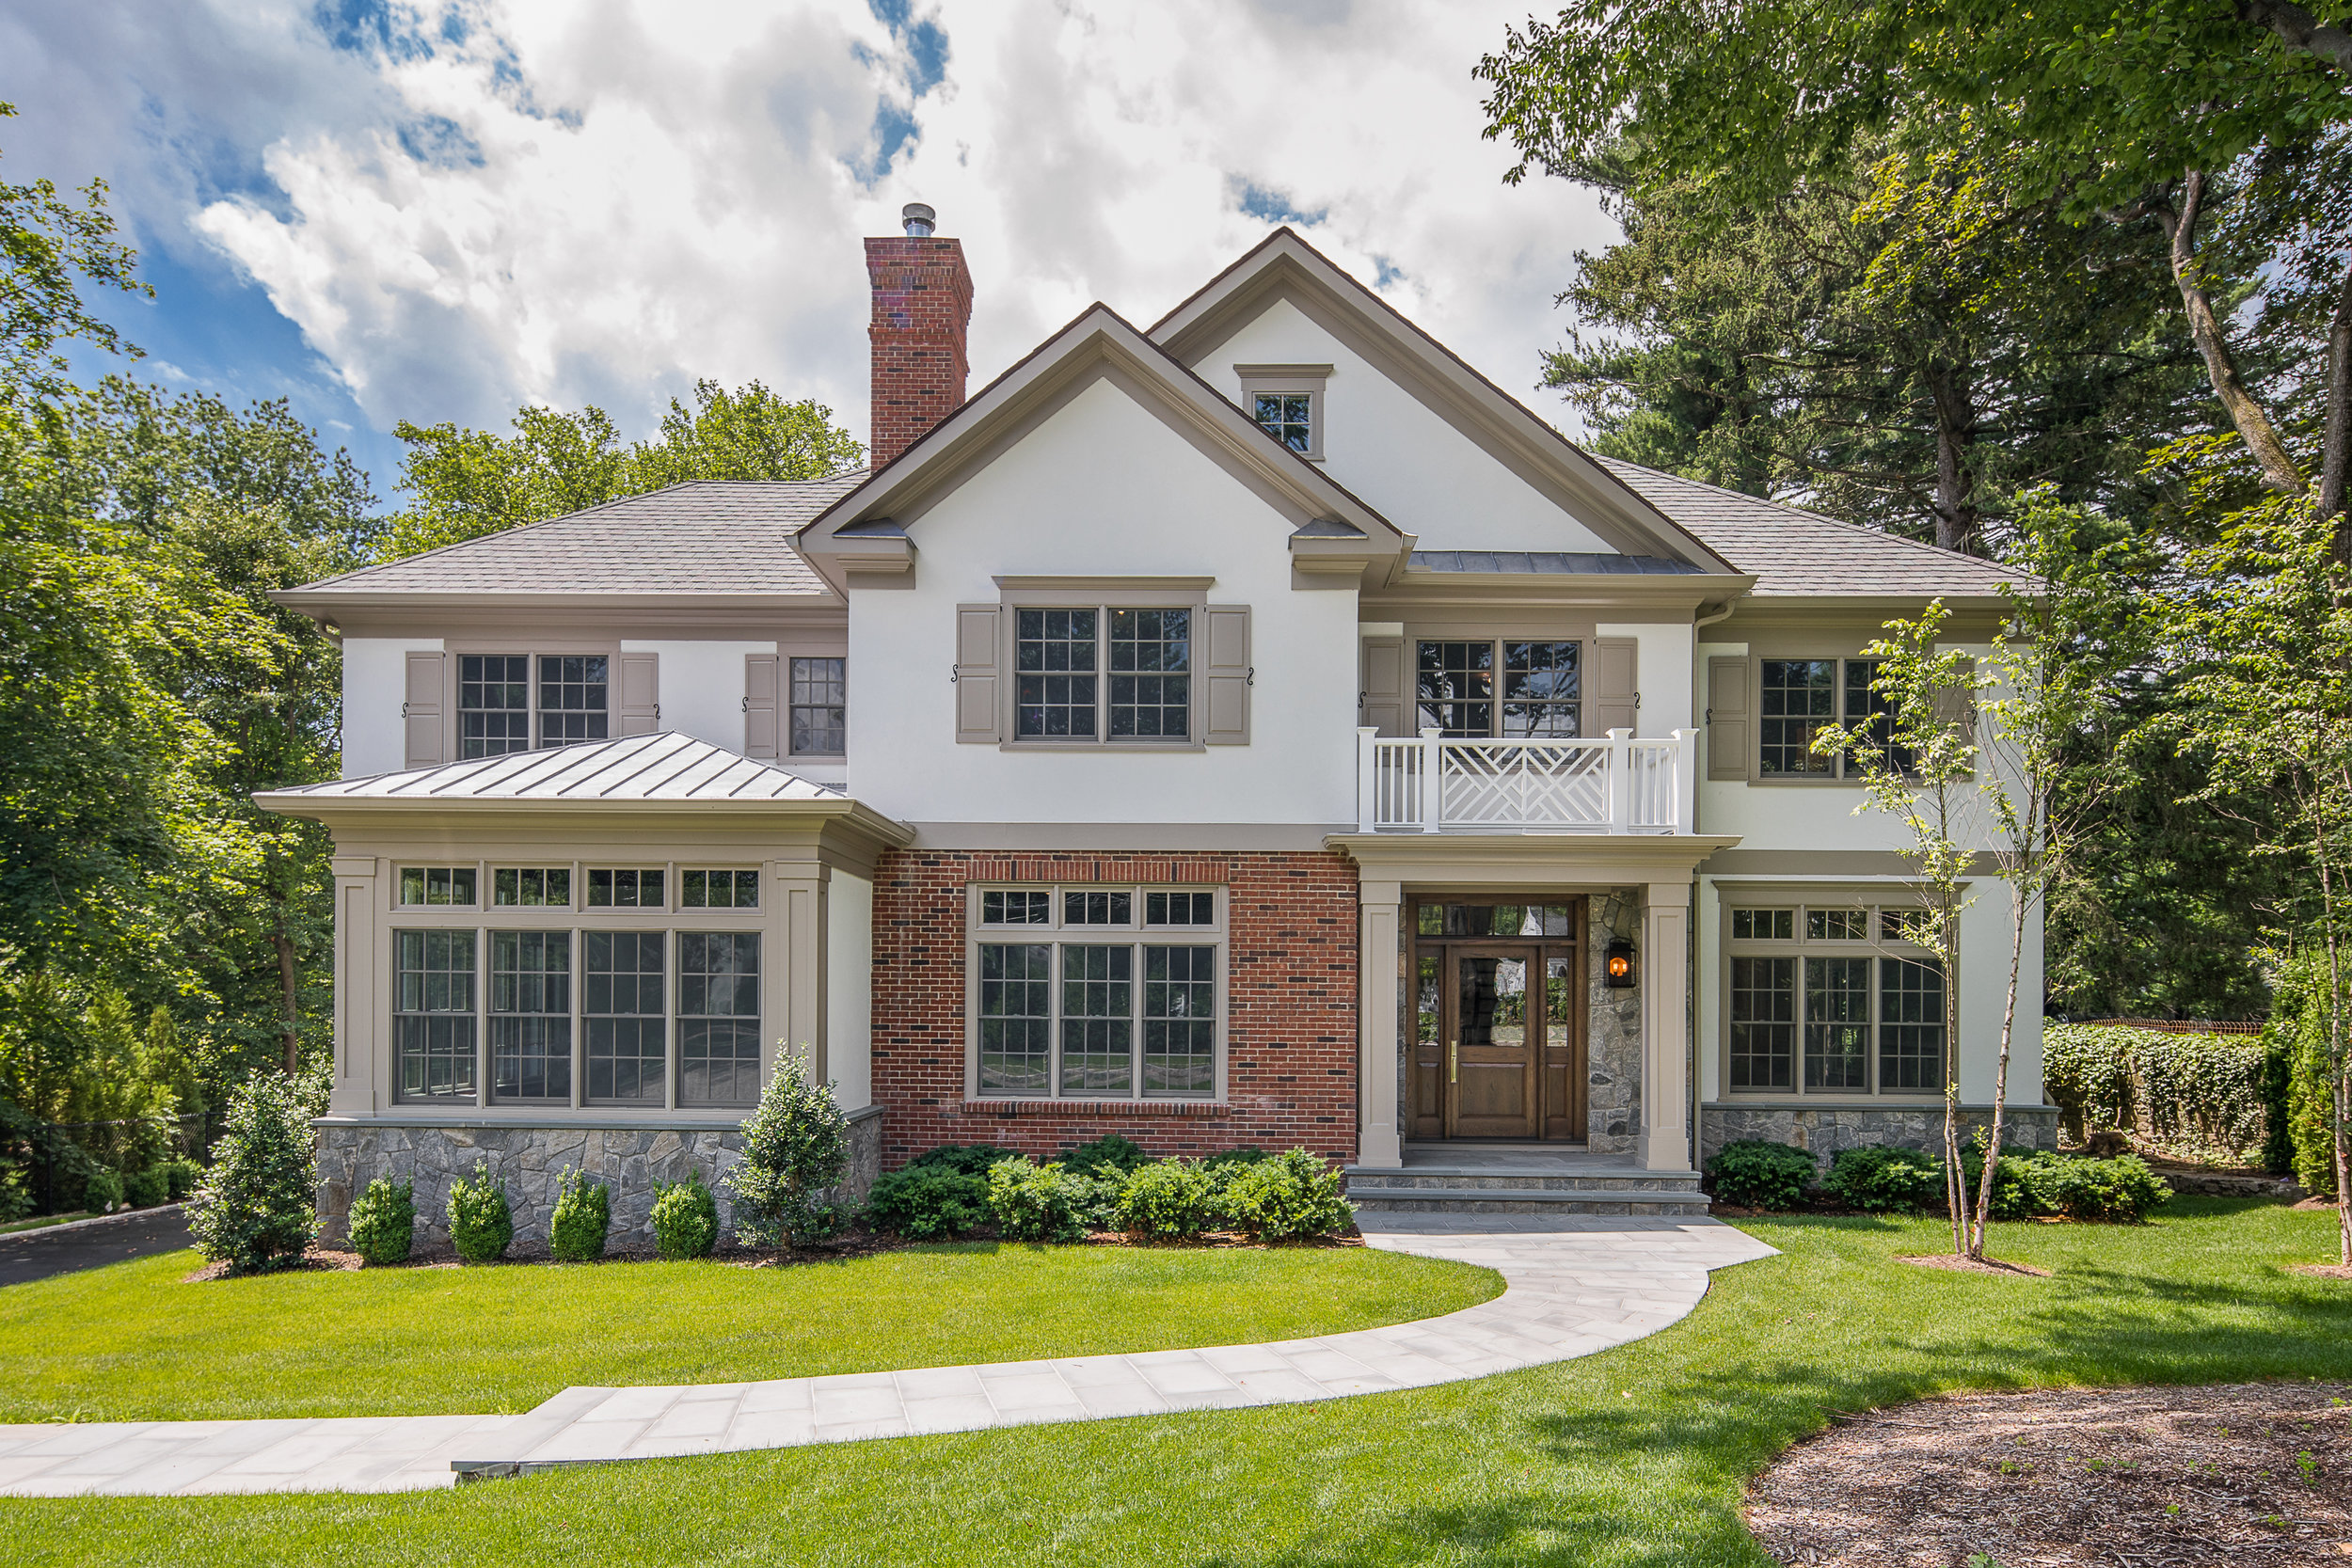 LISTED & SOLD  16 Fenimore Road Scarsdale, NY | Exceptional New Construction in Sought-After Fox Meadow. Represented the Seller as the Listing Agent & Represented the Buyer  (2017)